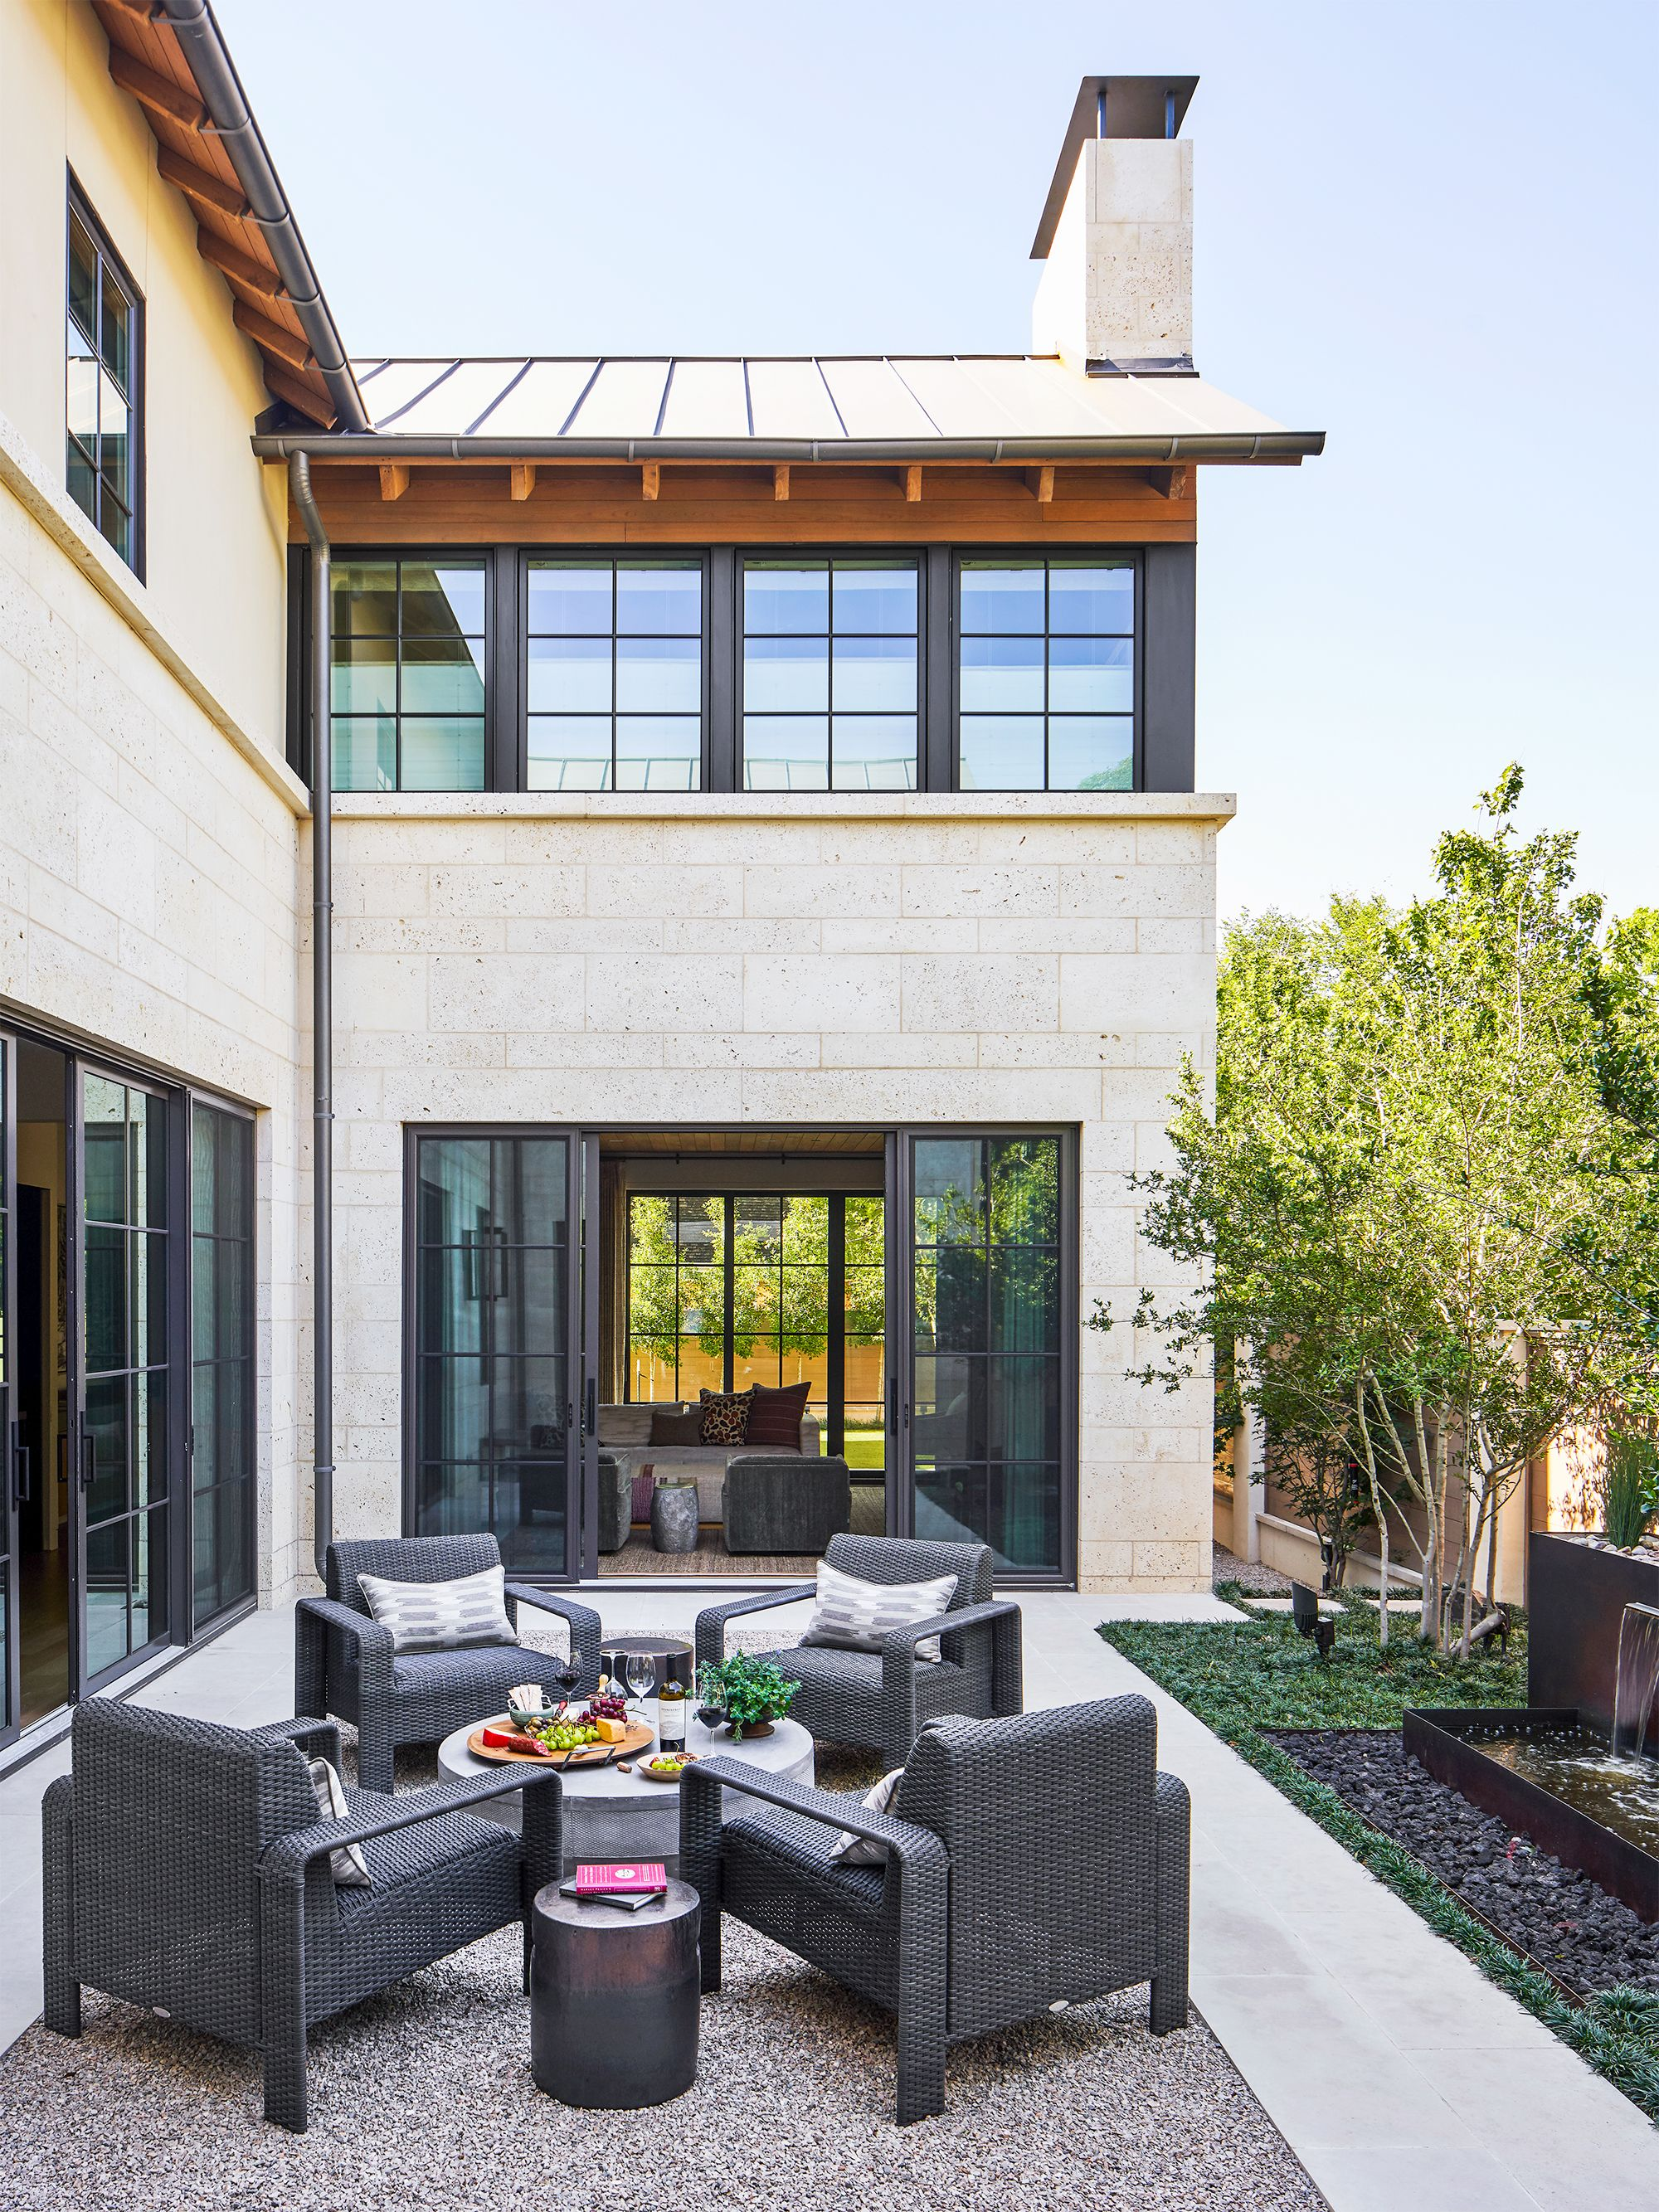 11 Mistakes Designers Want You to Stop Making in Your Outdoor Living Space